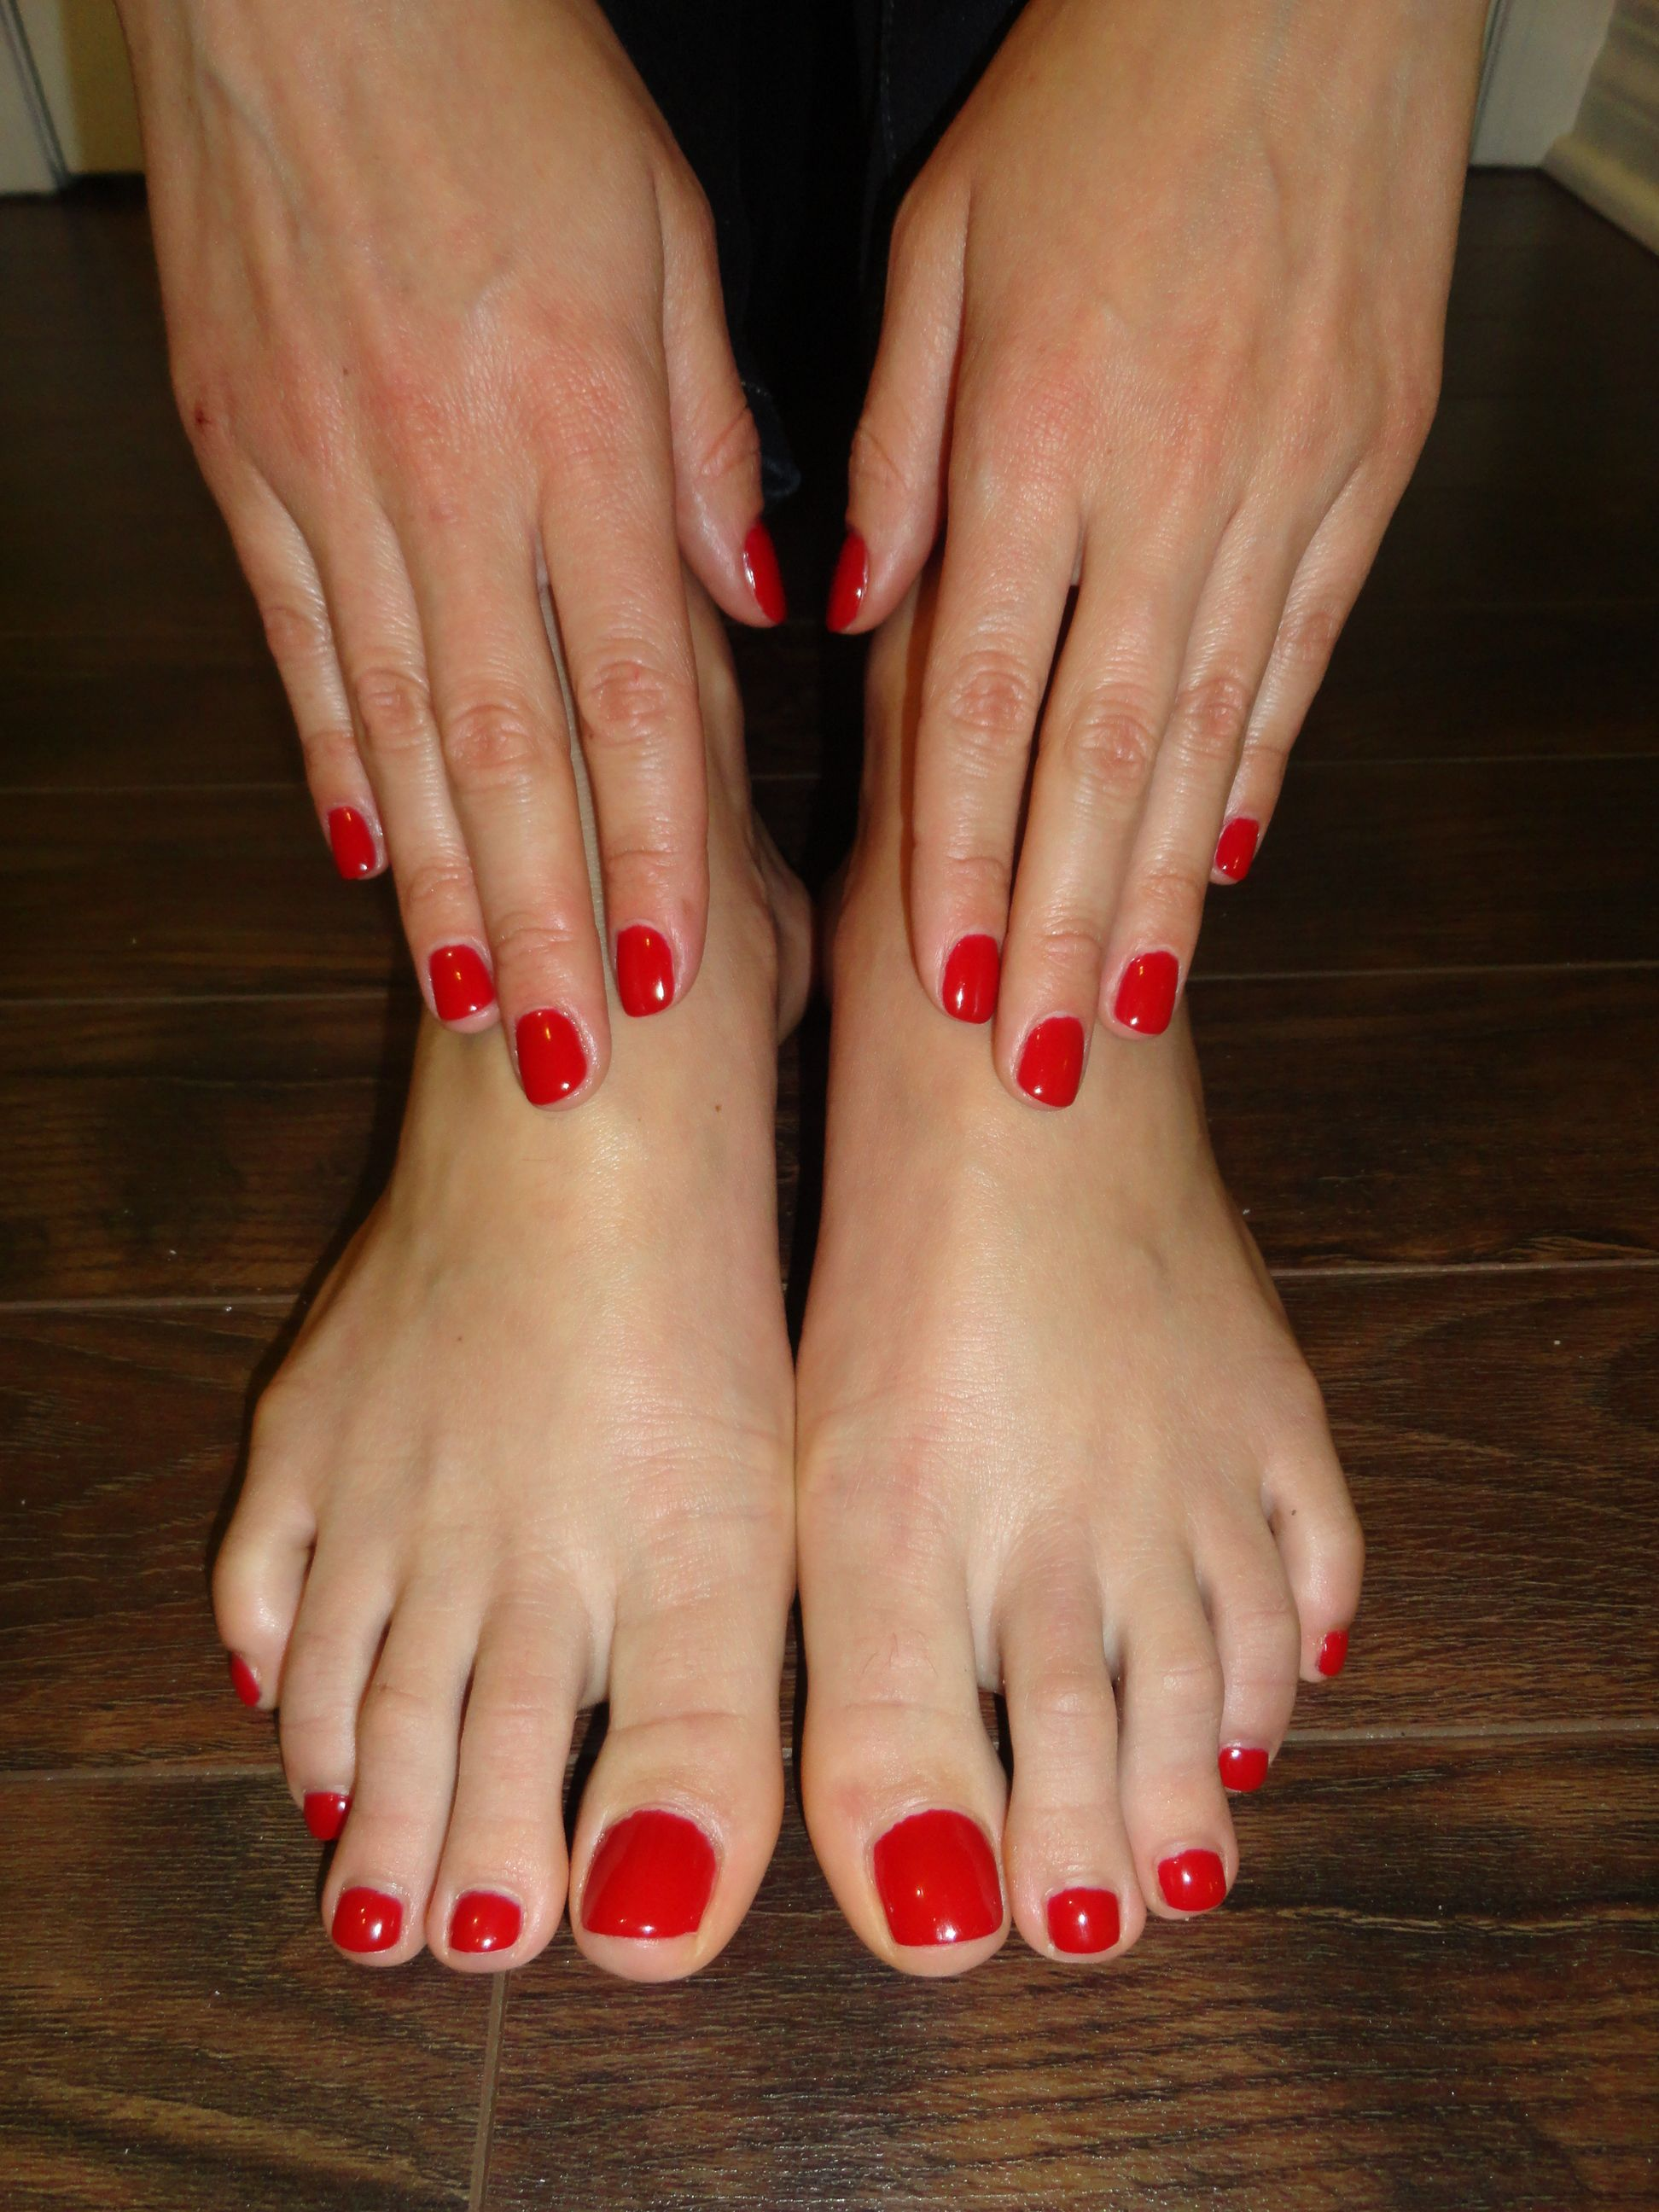 Red Shellac Nails & Toes | Nails | Pinterest | Piernas y Bellisima